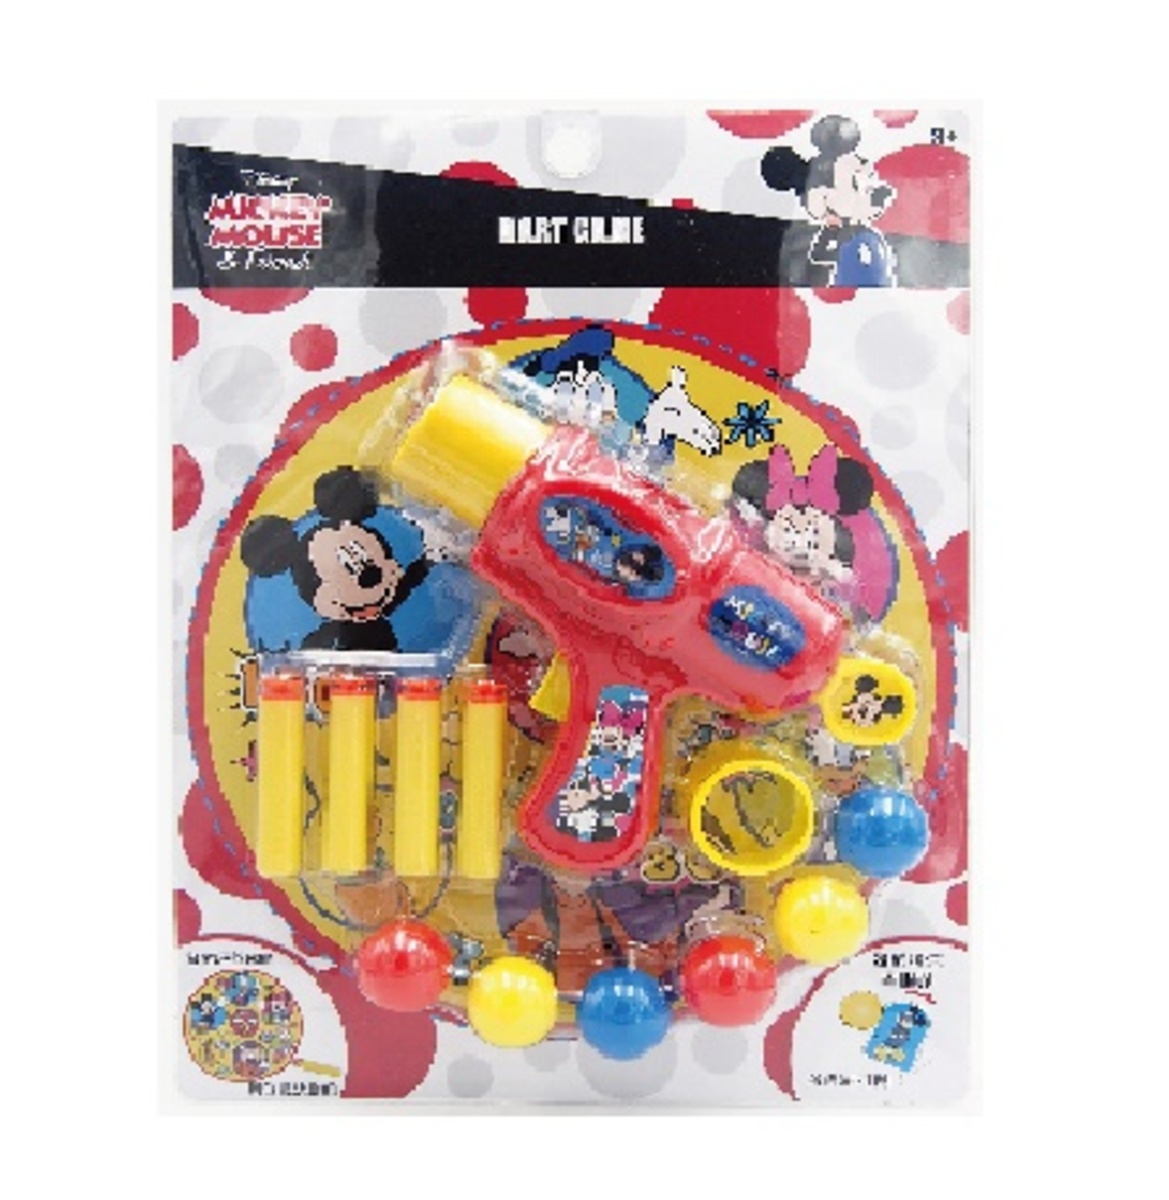 Mickey Two-in-one gun Dart game